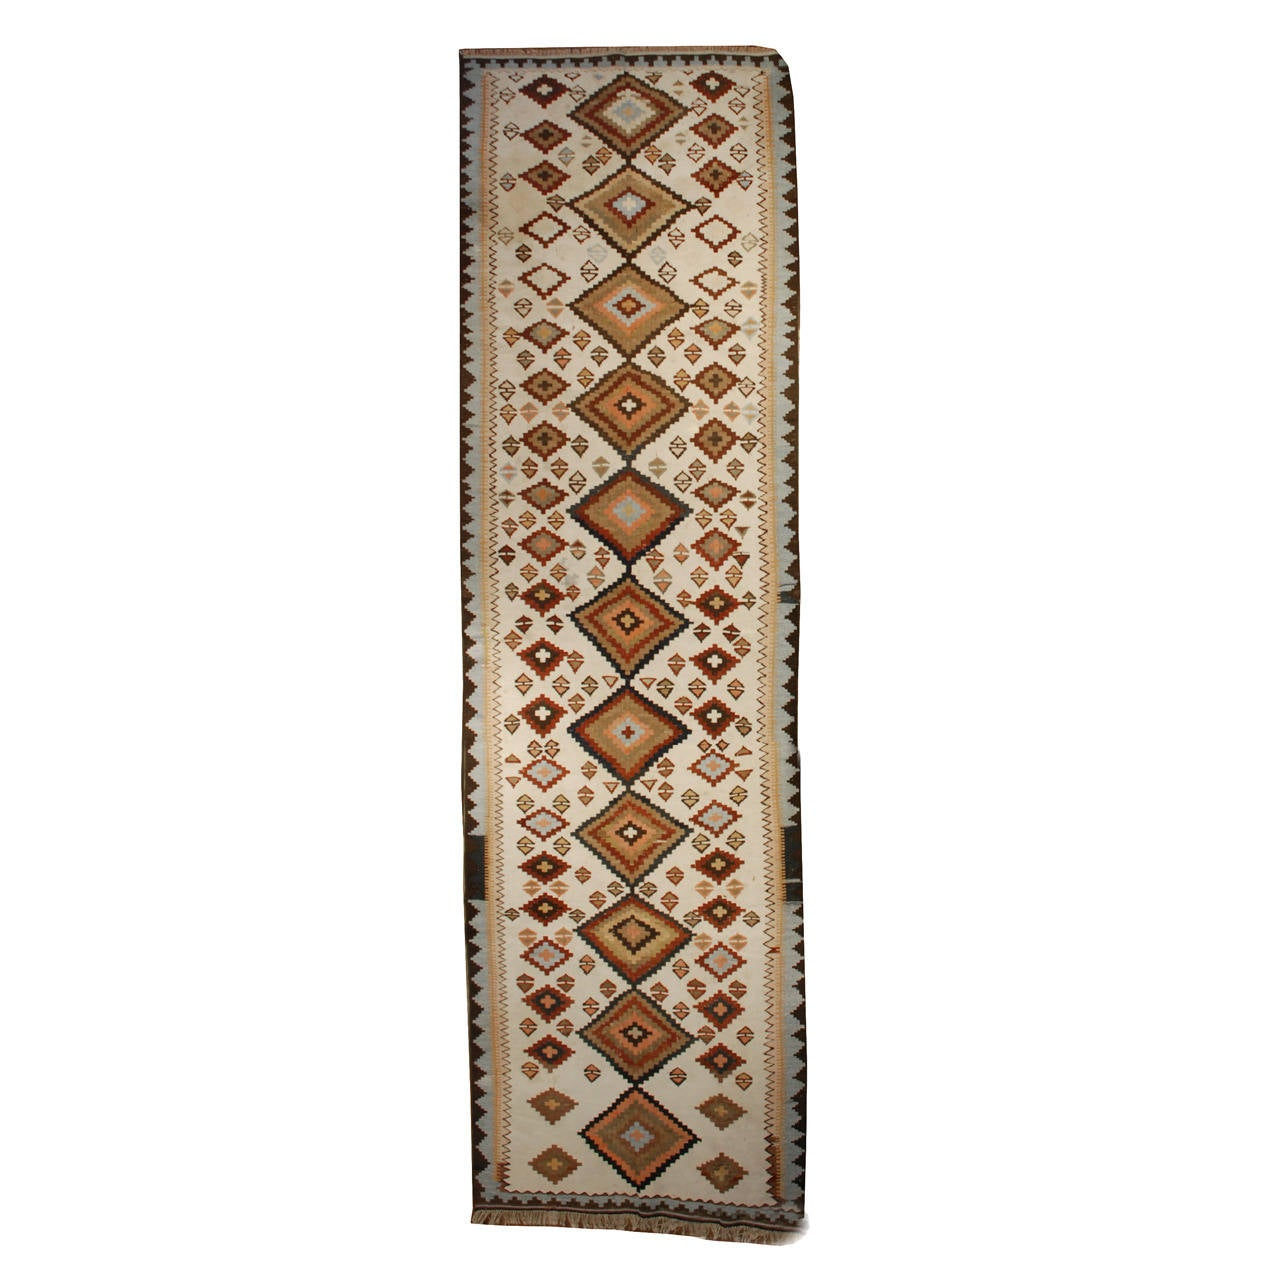 Early 20th Century Kilim Runner